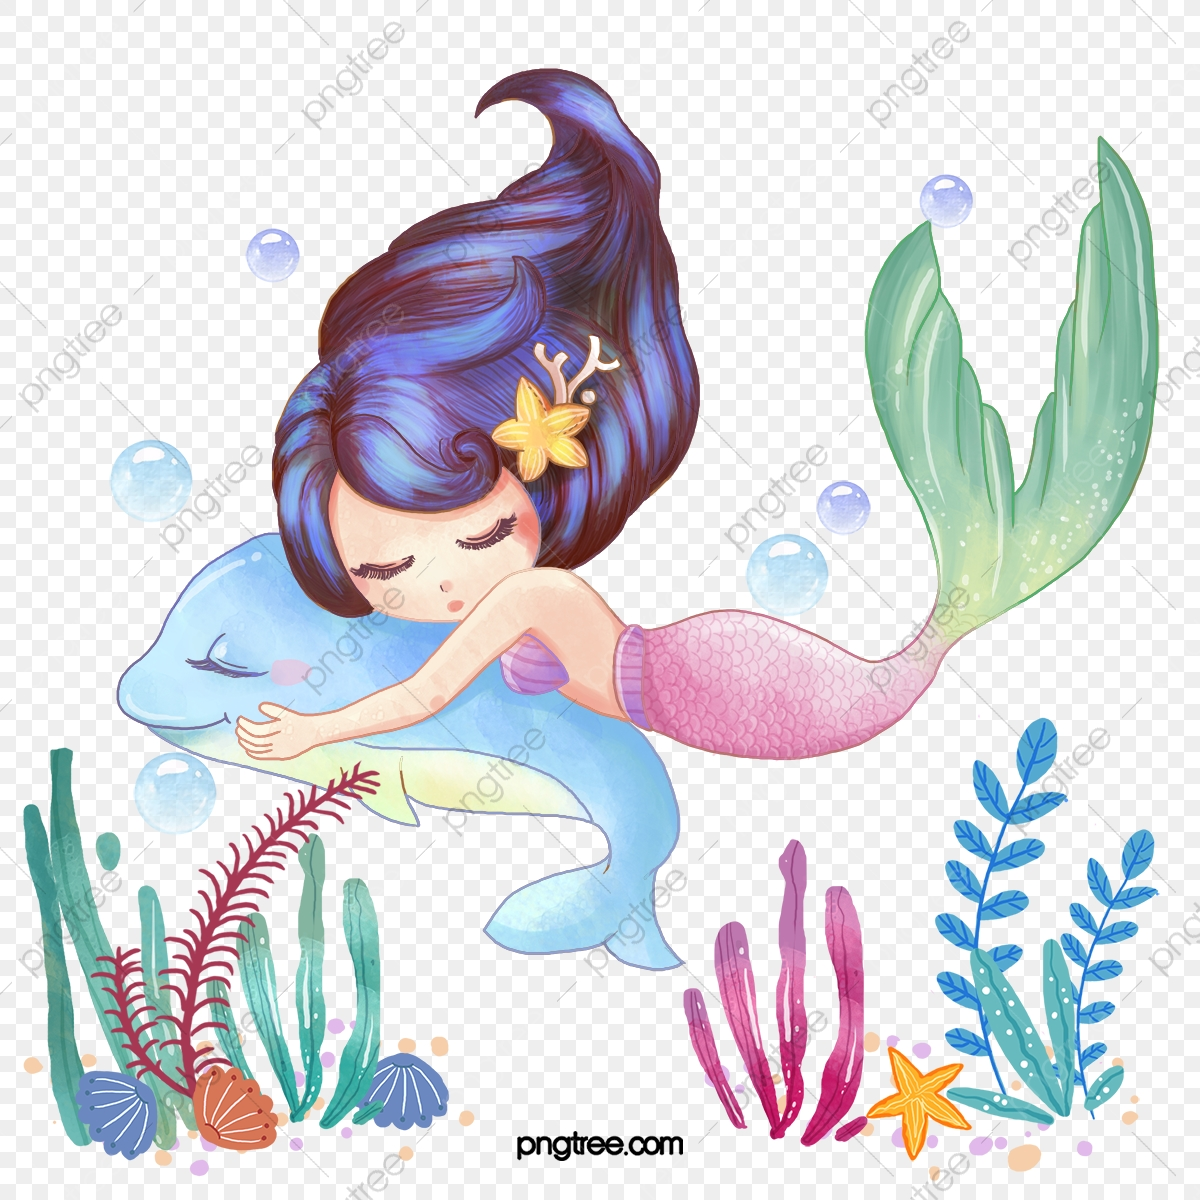 Mermaid Clipart Png Images Vector And Psd Files Free Download On Pngtree